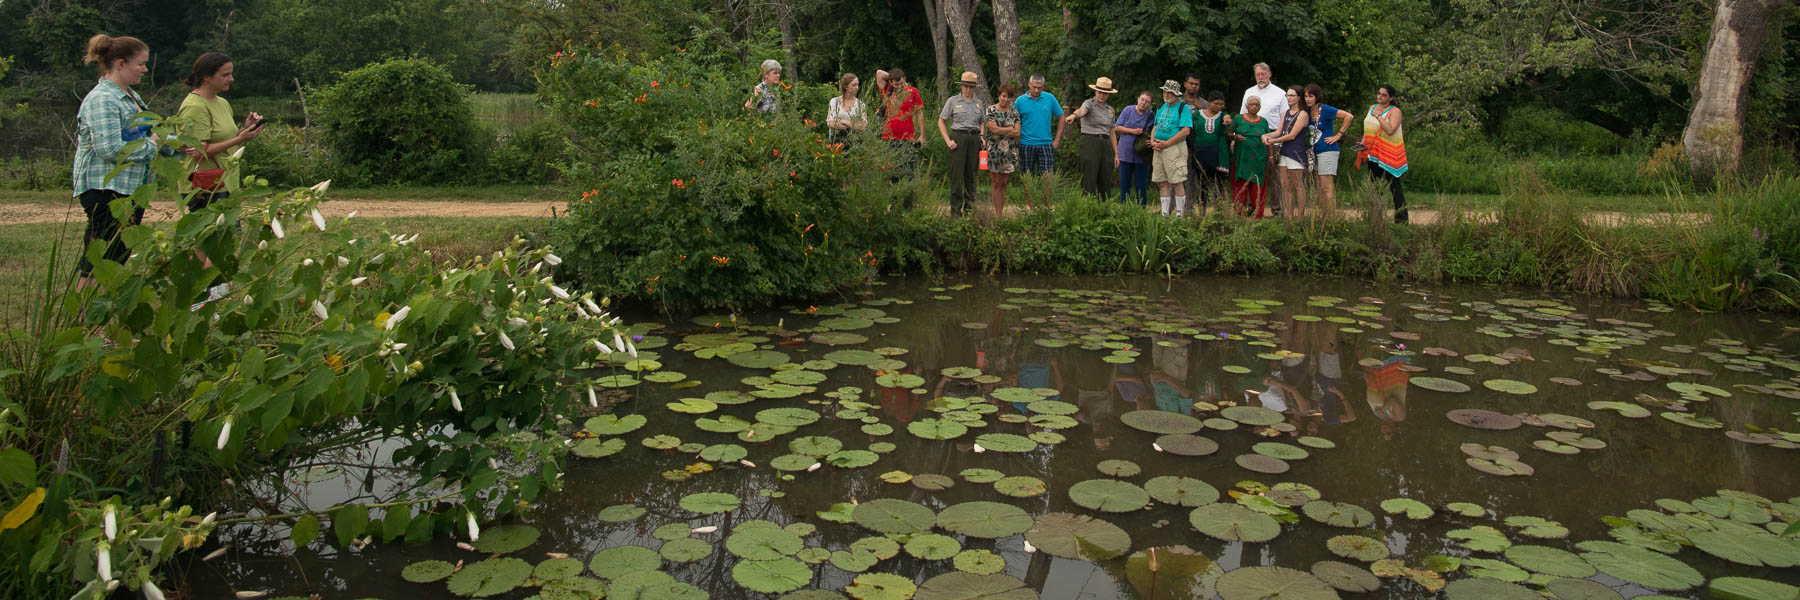 Park Programs - Kenilworth Park & Aquatic Gardens (U.S. National ...